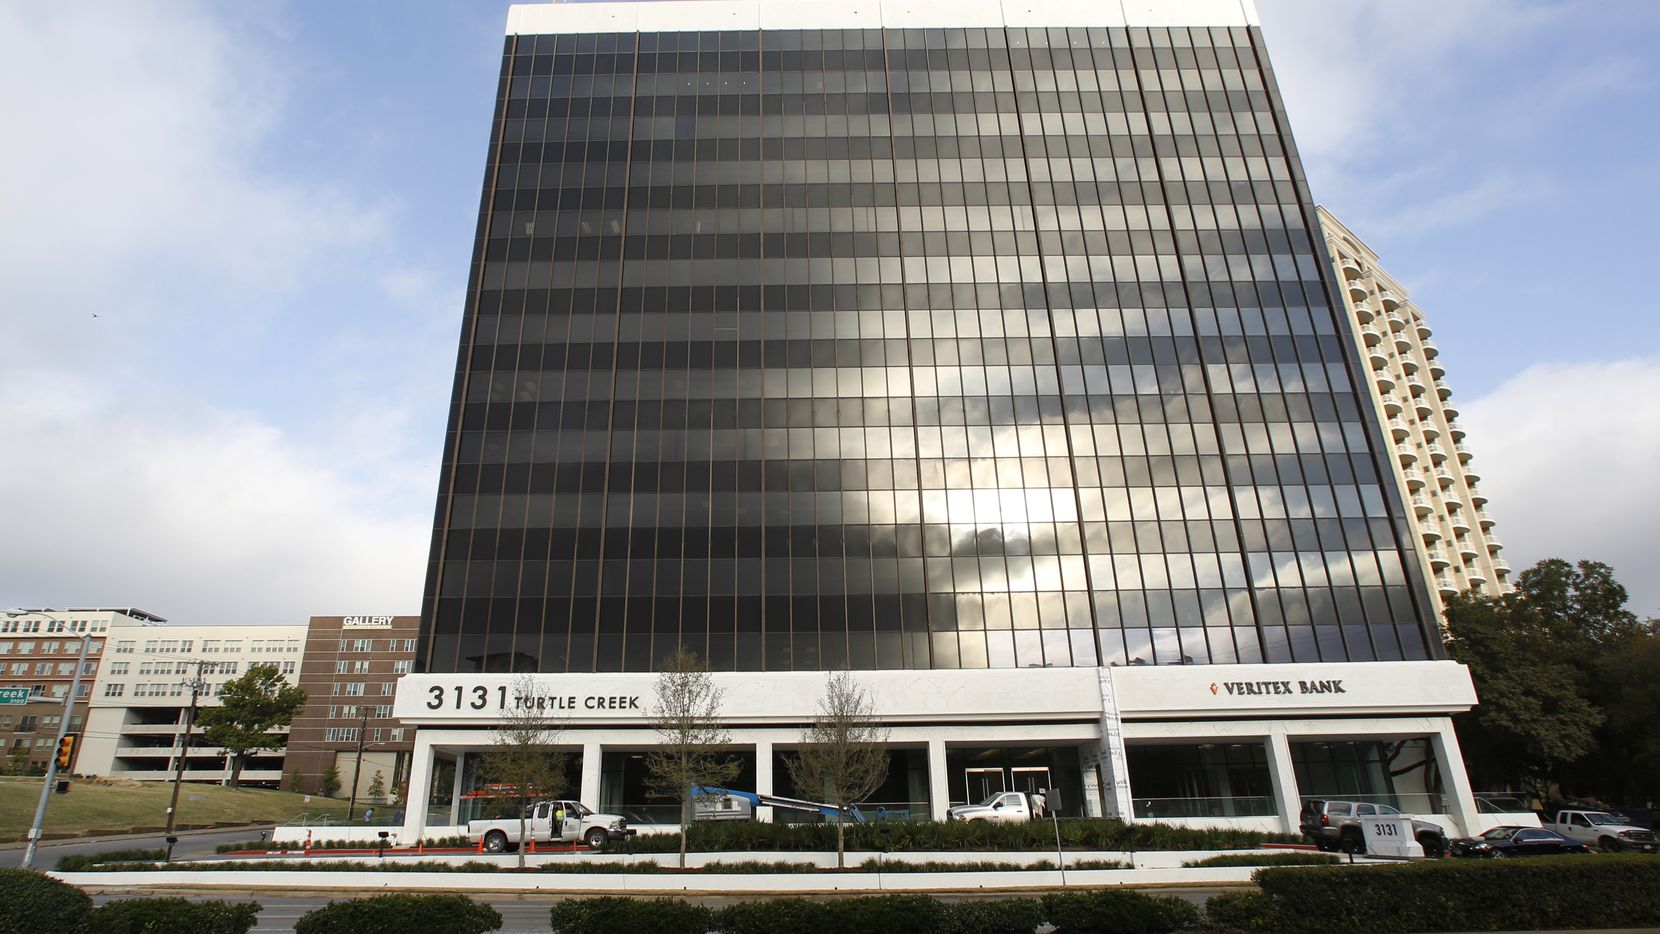 The 3131 Tuttle Creek tower just had an almost $10 million makeover.